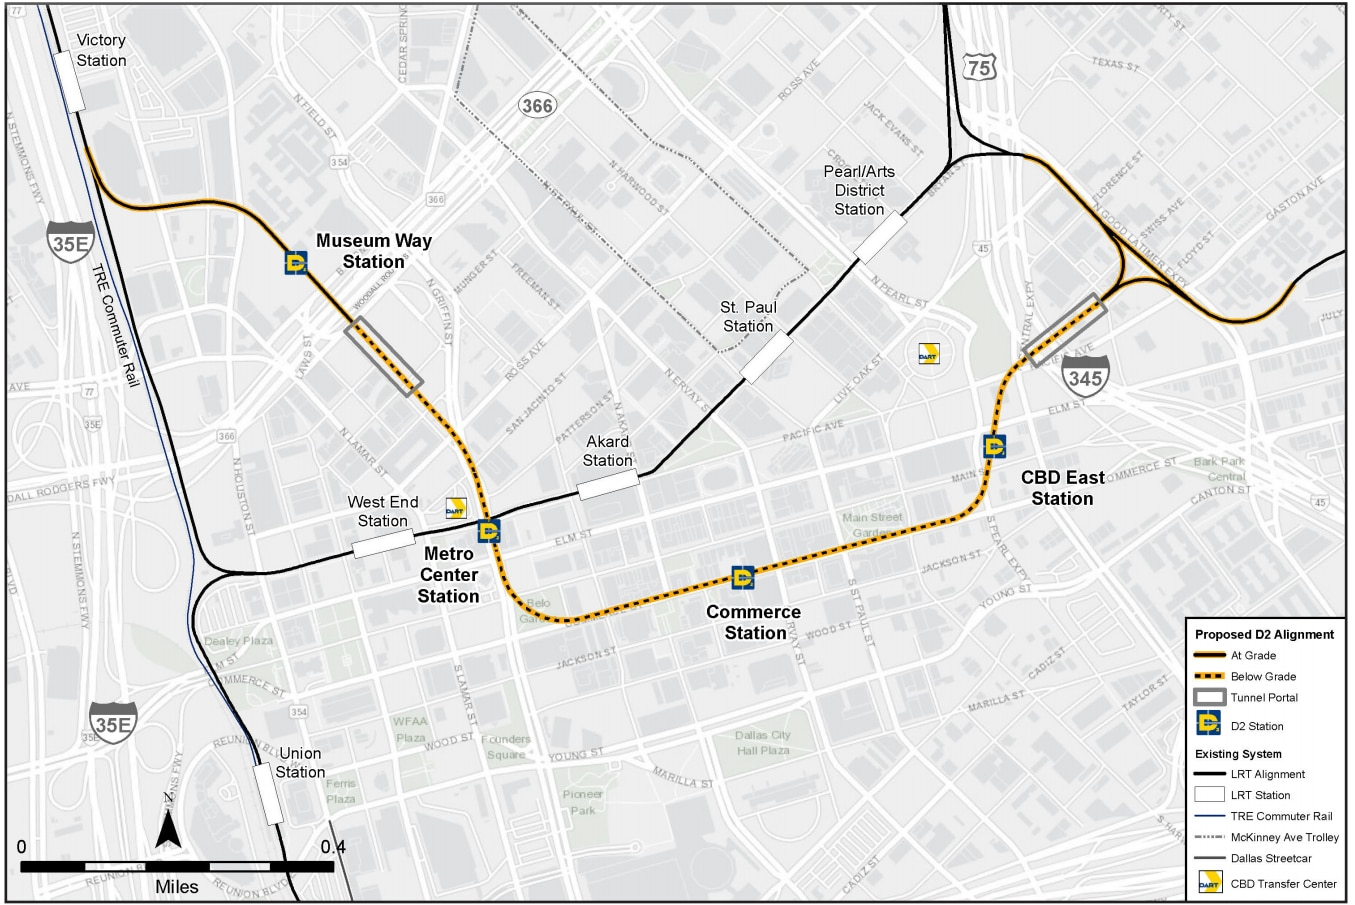 The latest DART map shows D2 coming to street level long after it passes under Interstate 345 on the Deep Ellum side. The city says that likely needs to be rethought.